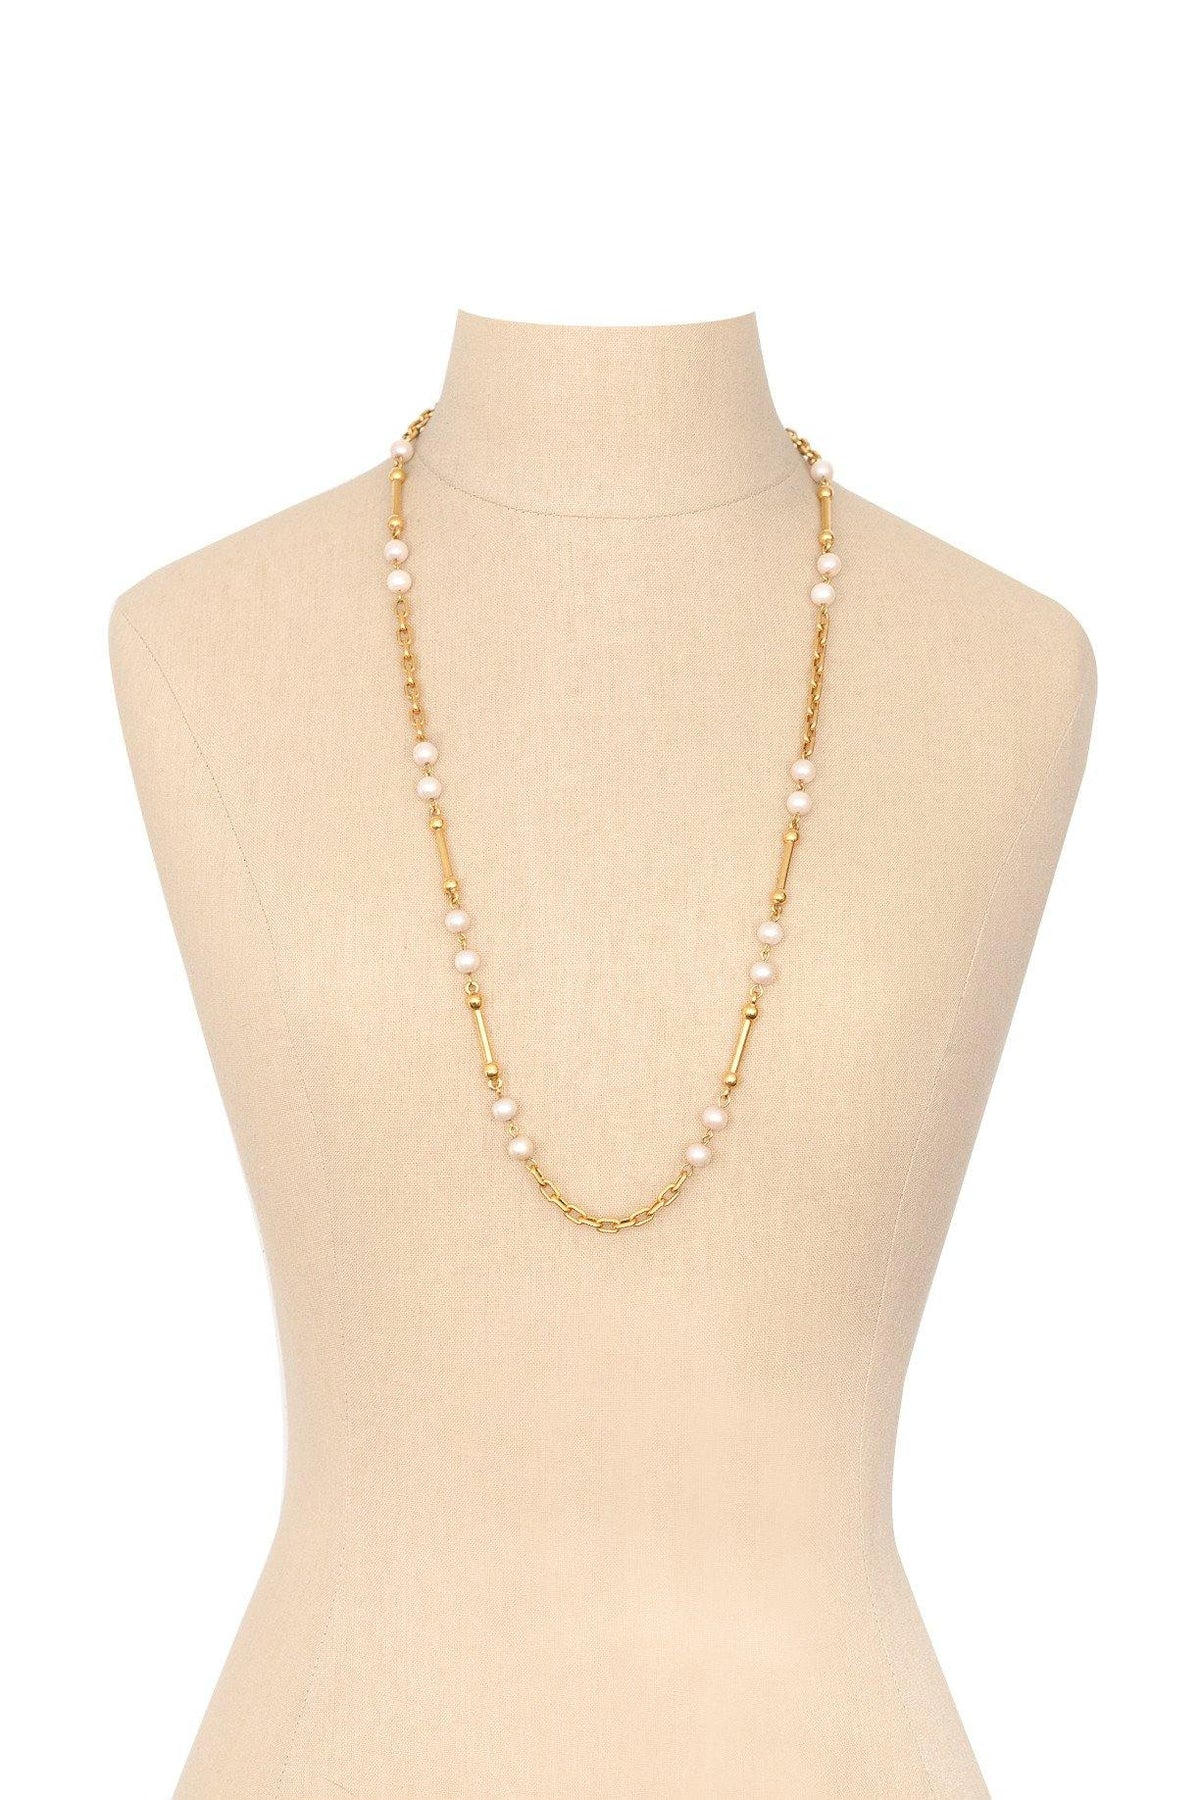 80's Amway Pearl Layering Necklace